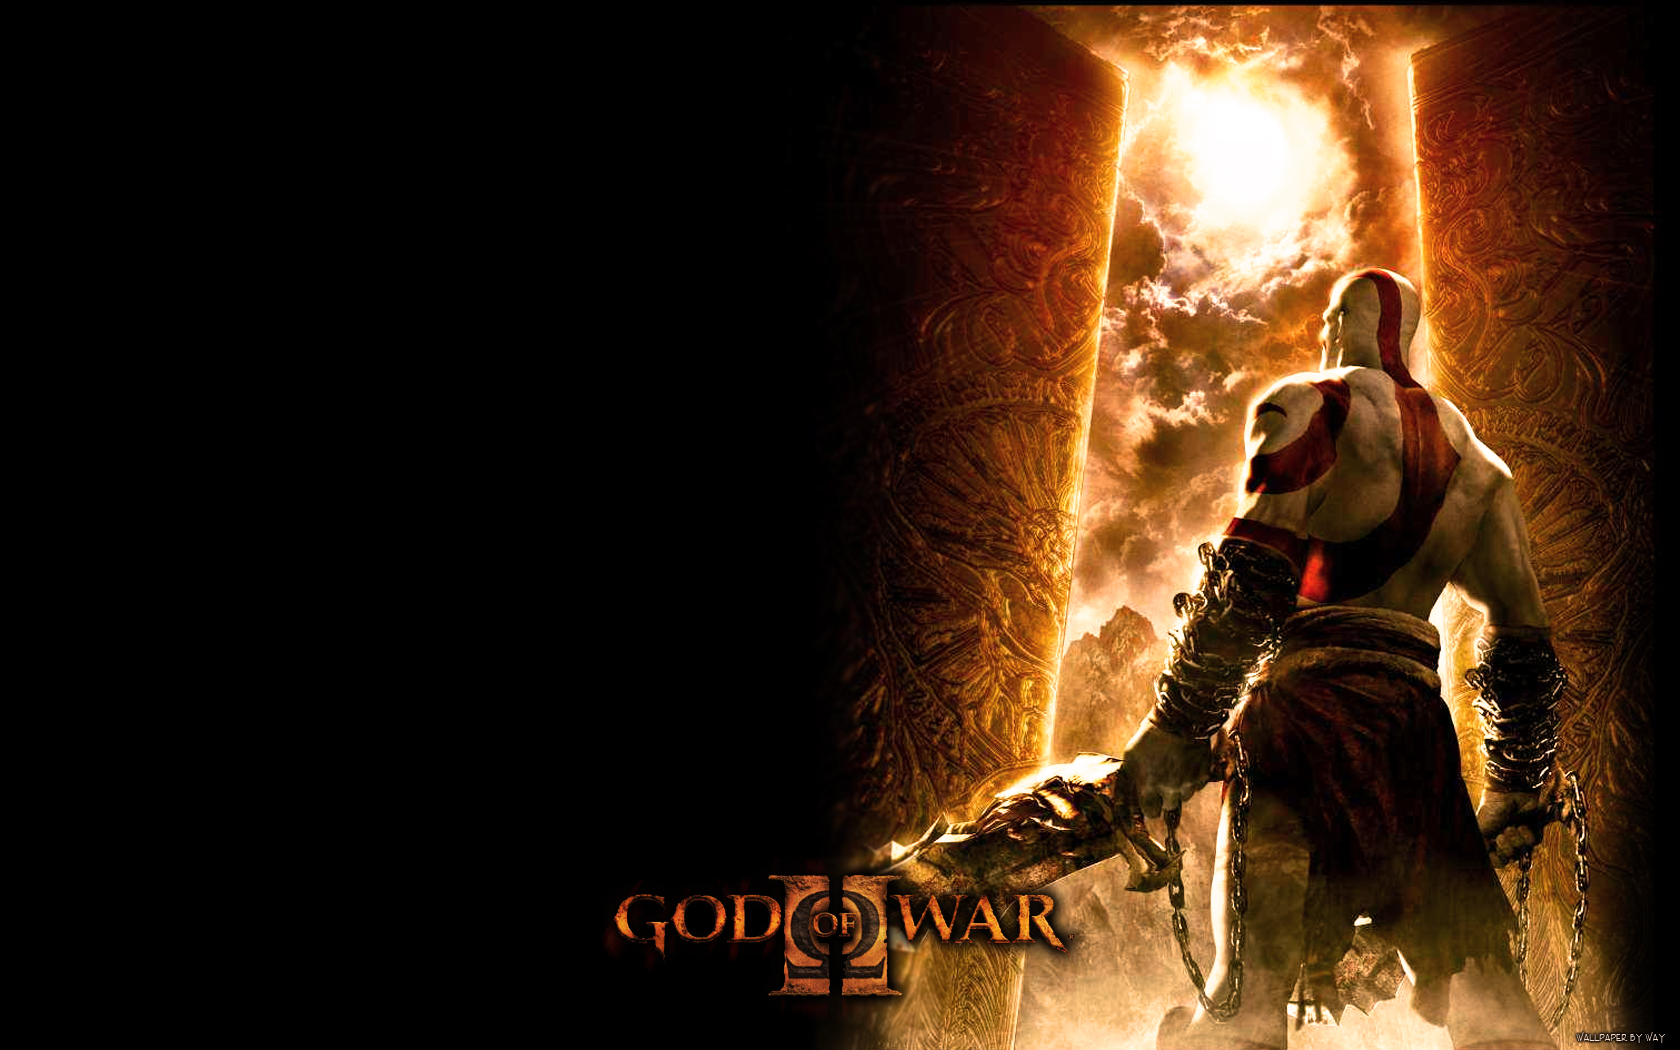 God of war 1 wallpaper hd